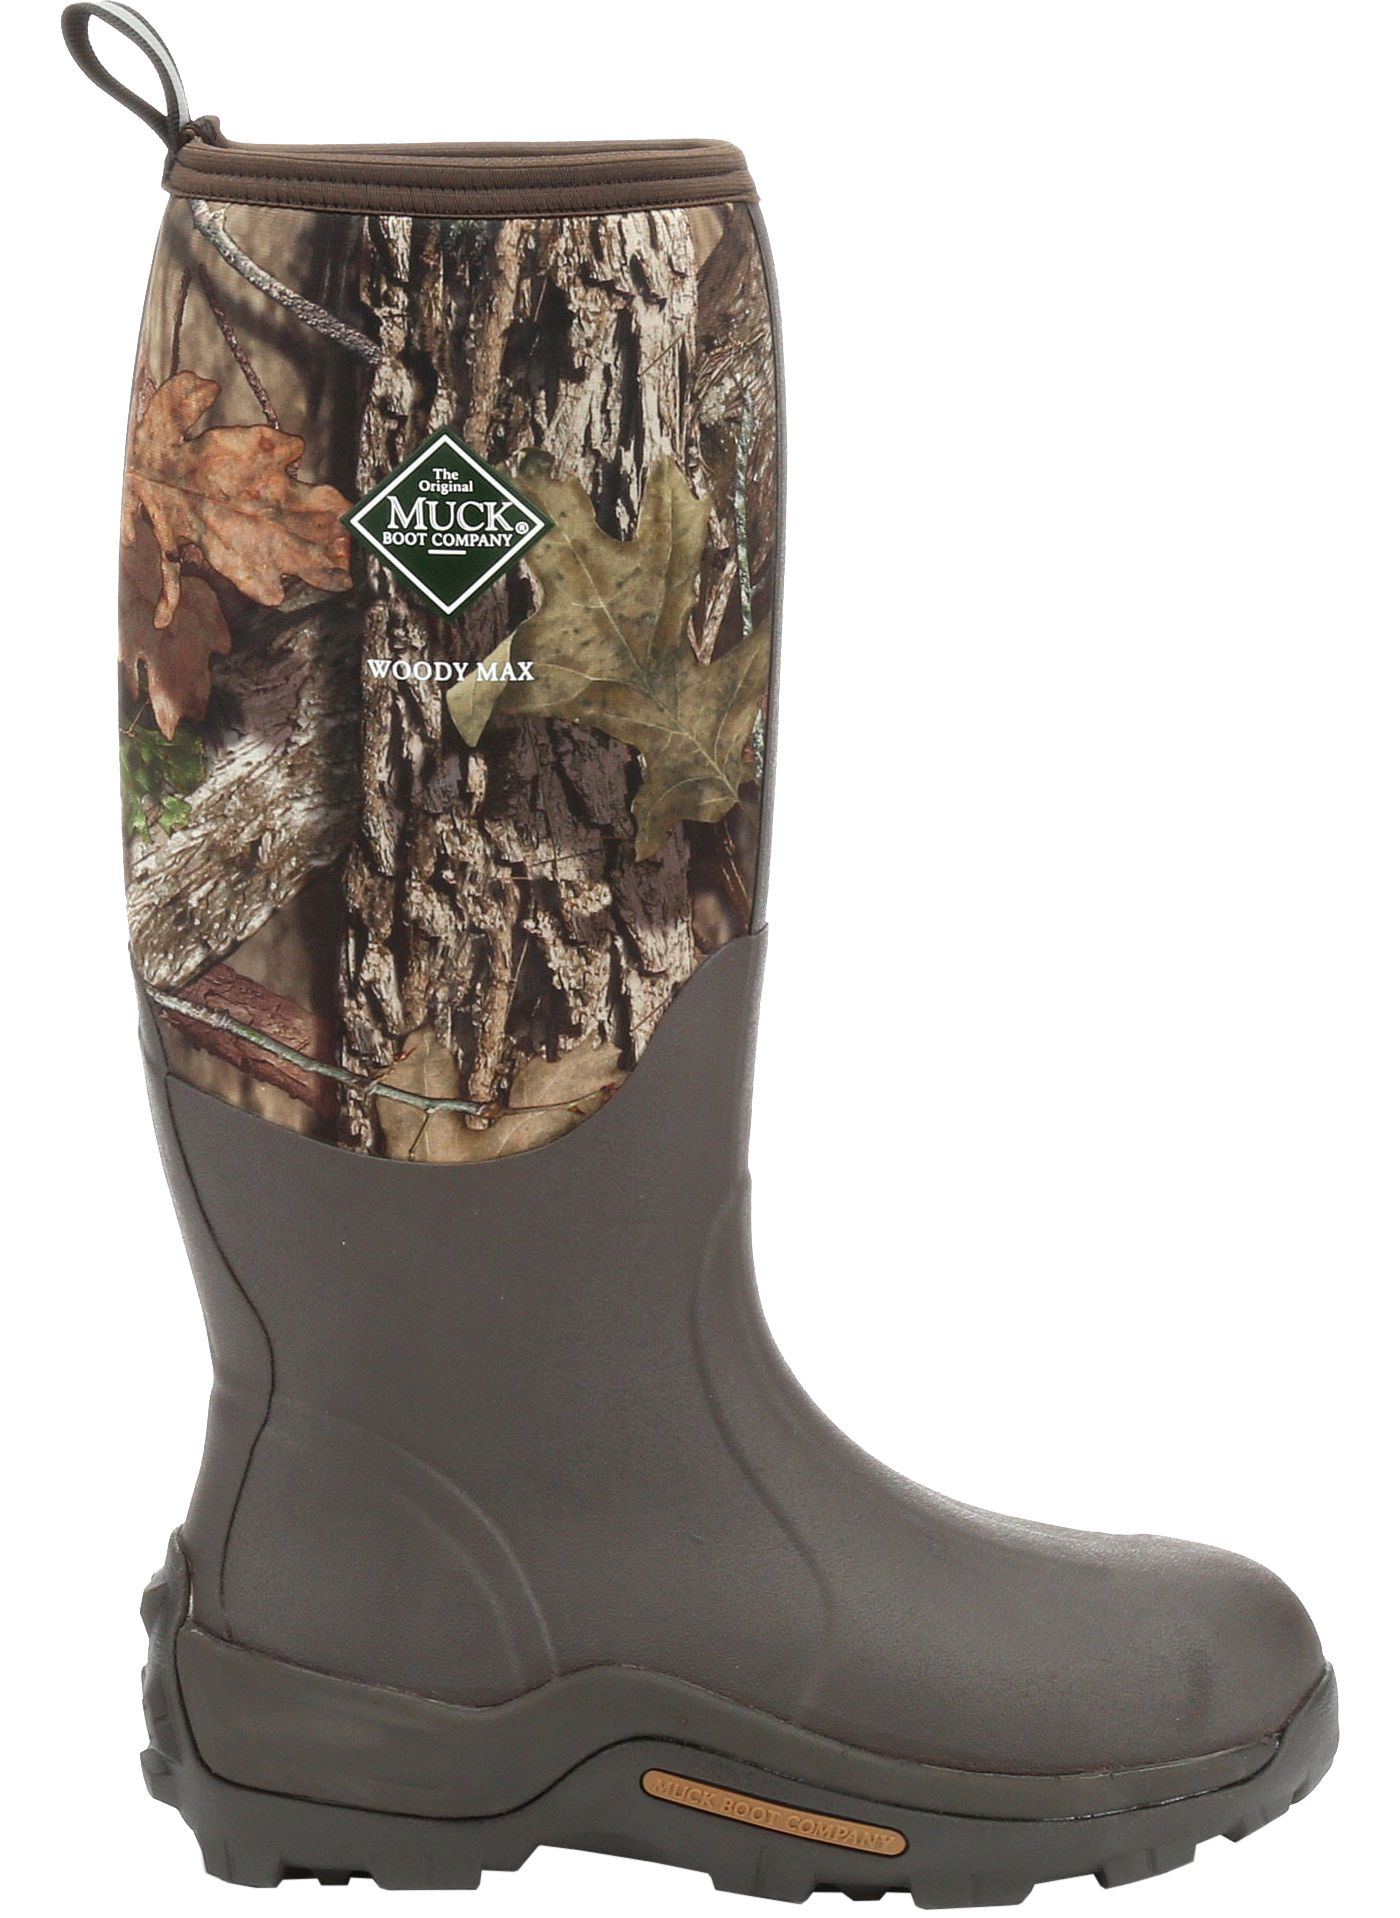 Muck Boots Men's Woody Max Insulated Waterproof Hunting Boots